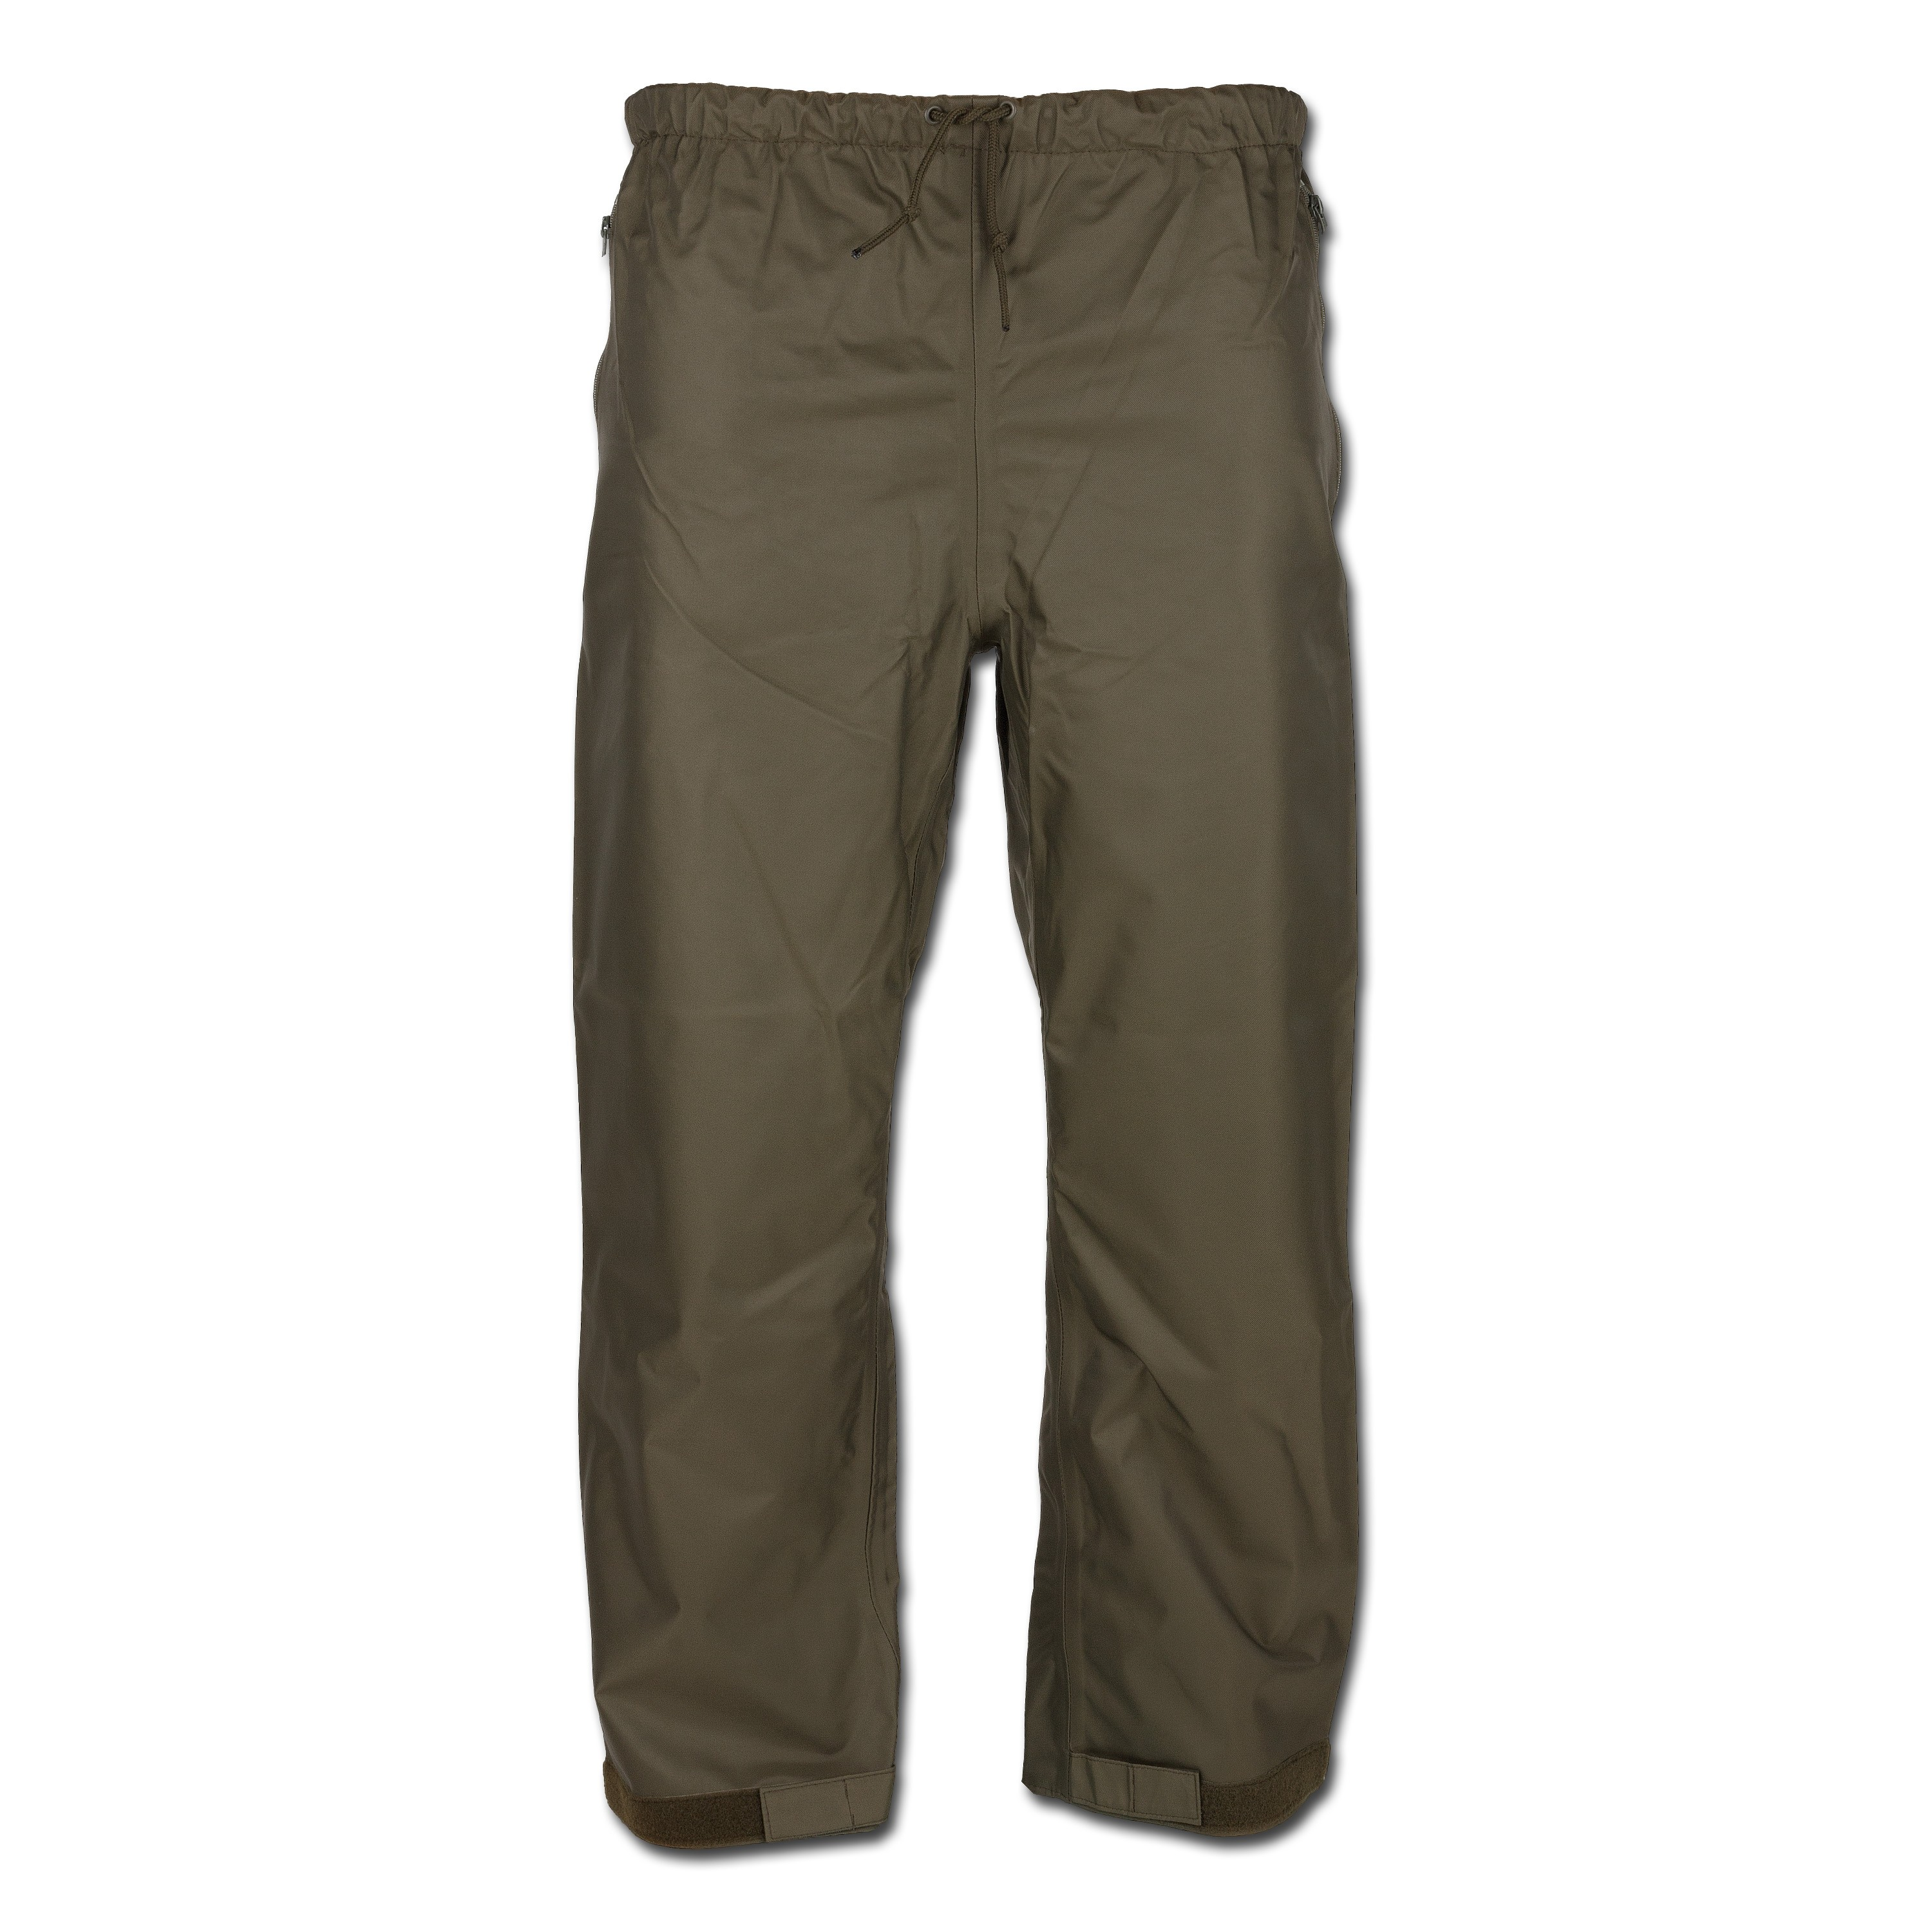 BW Gore-Tex Pants Used